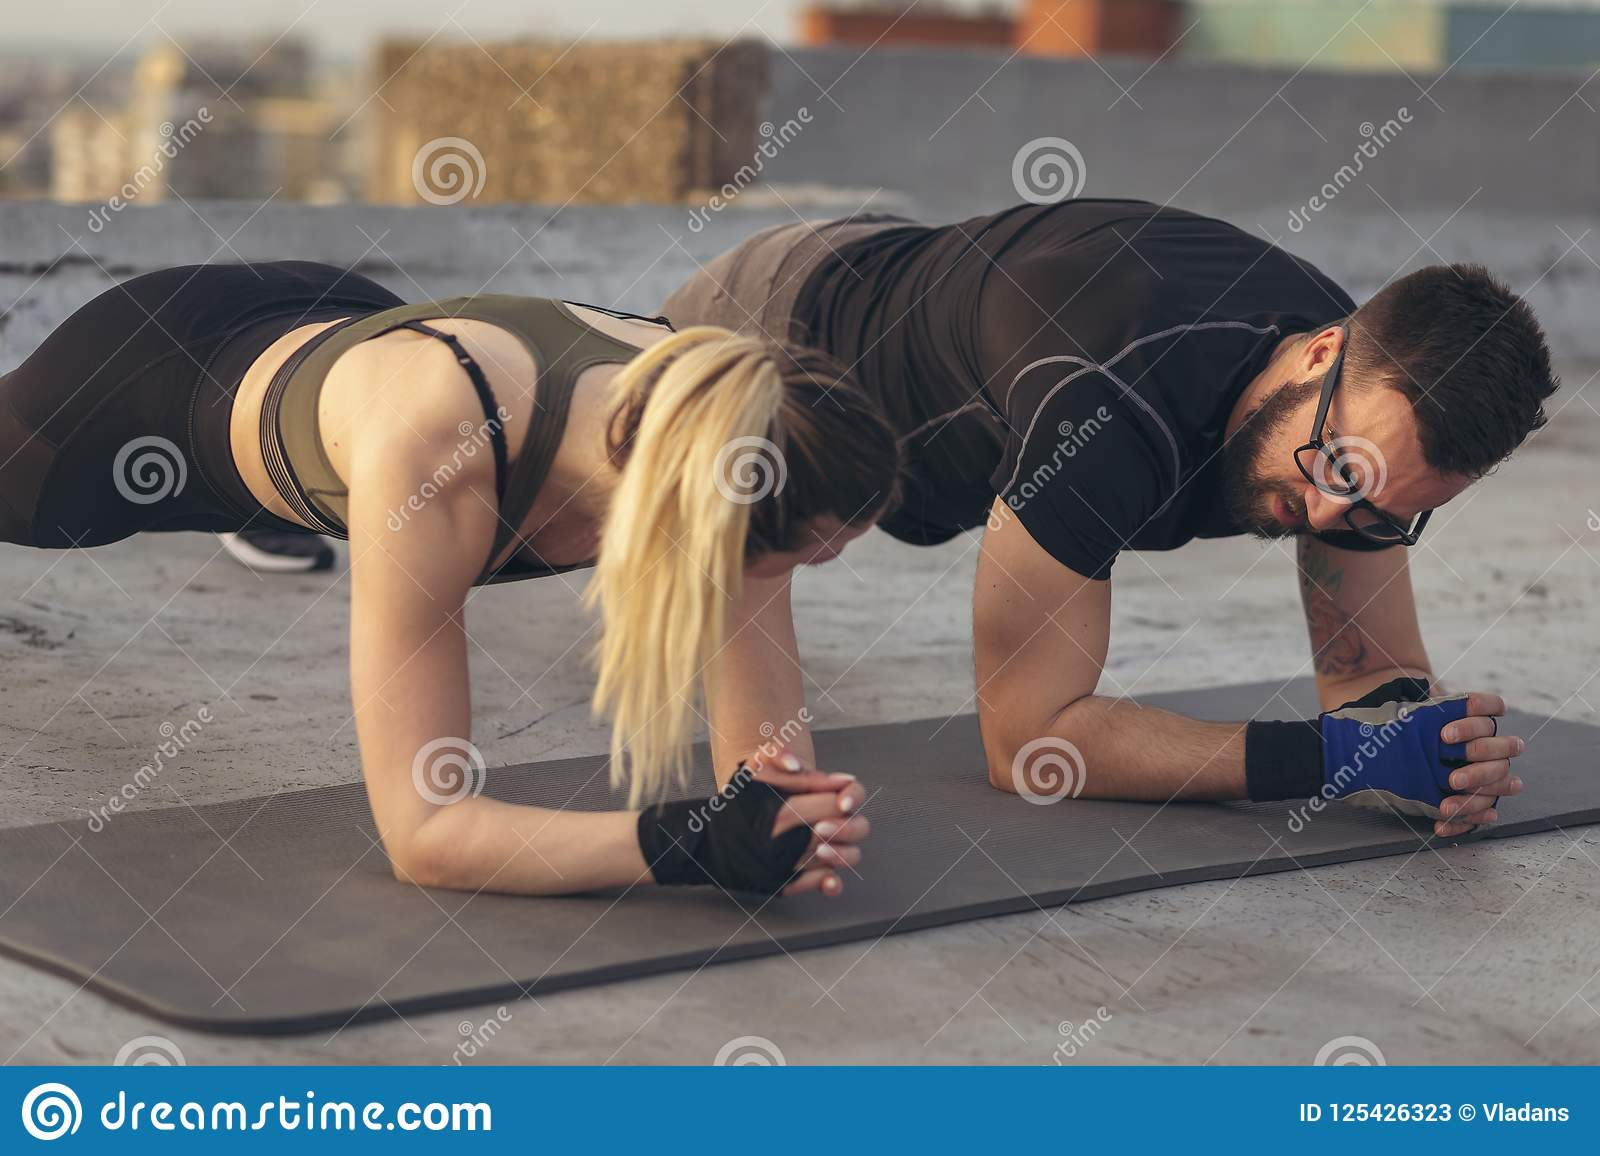 Couple doing a plank exercise